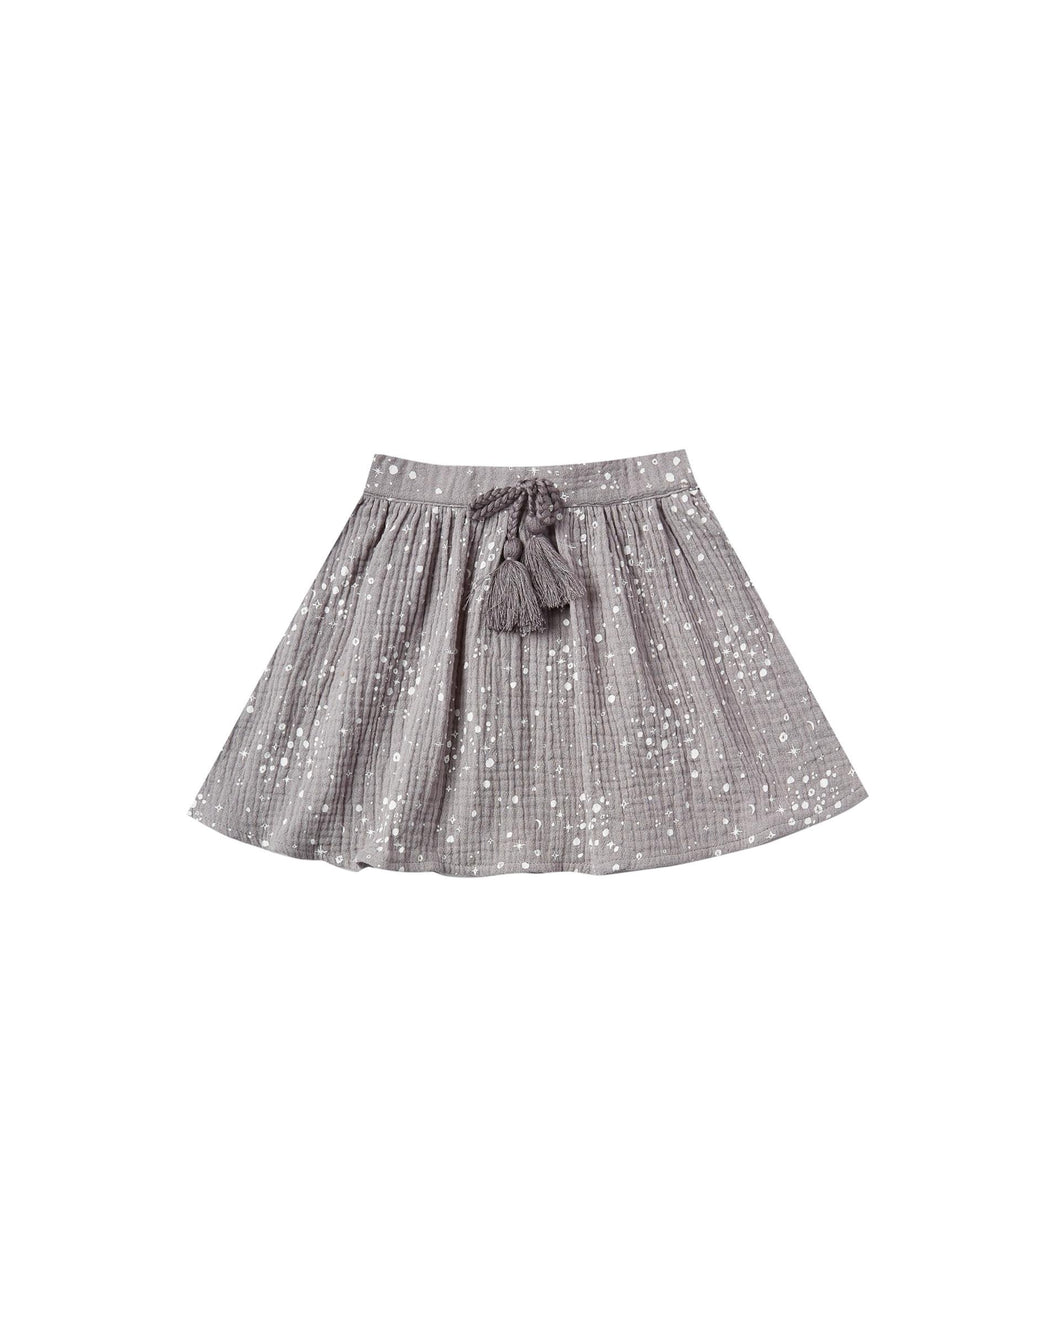 Rylee & Cru Moondust Mini Skirt